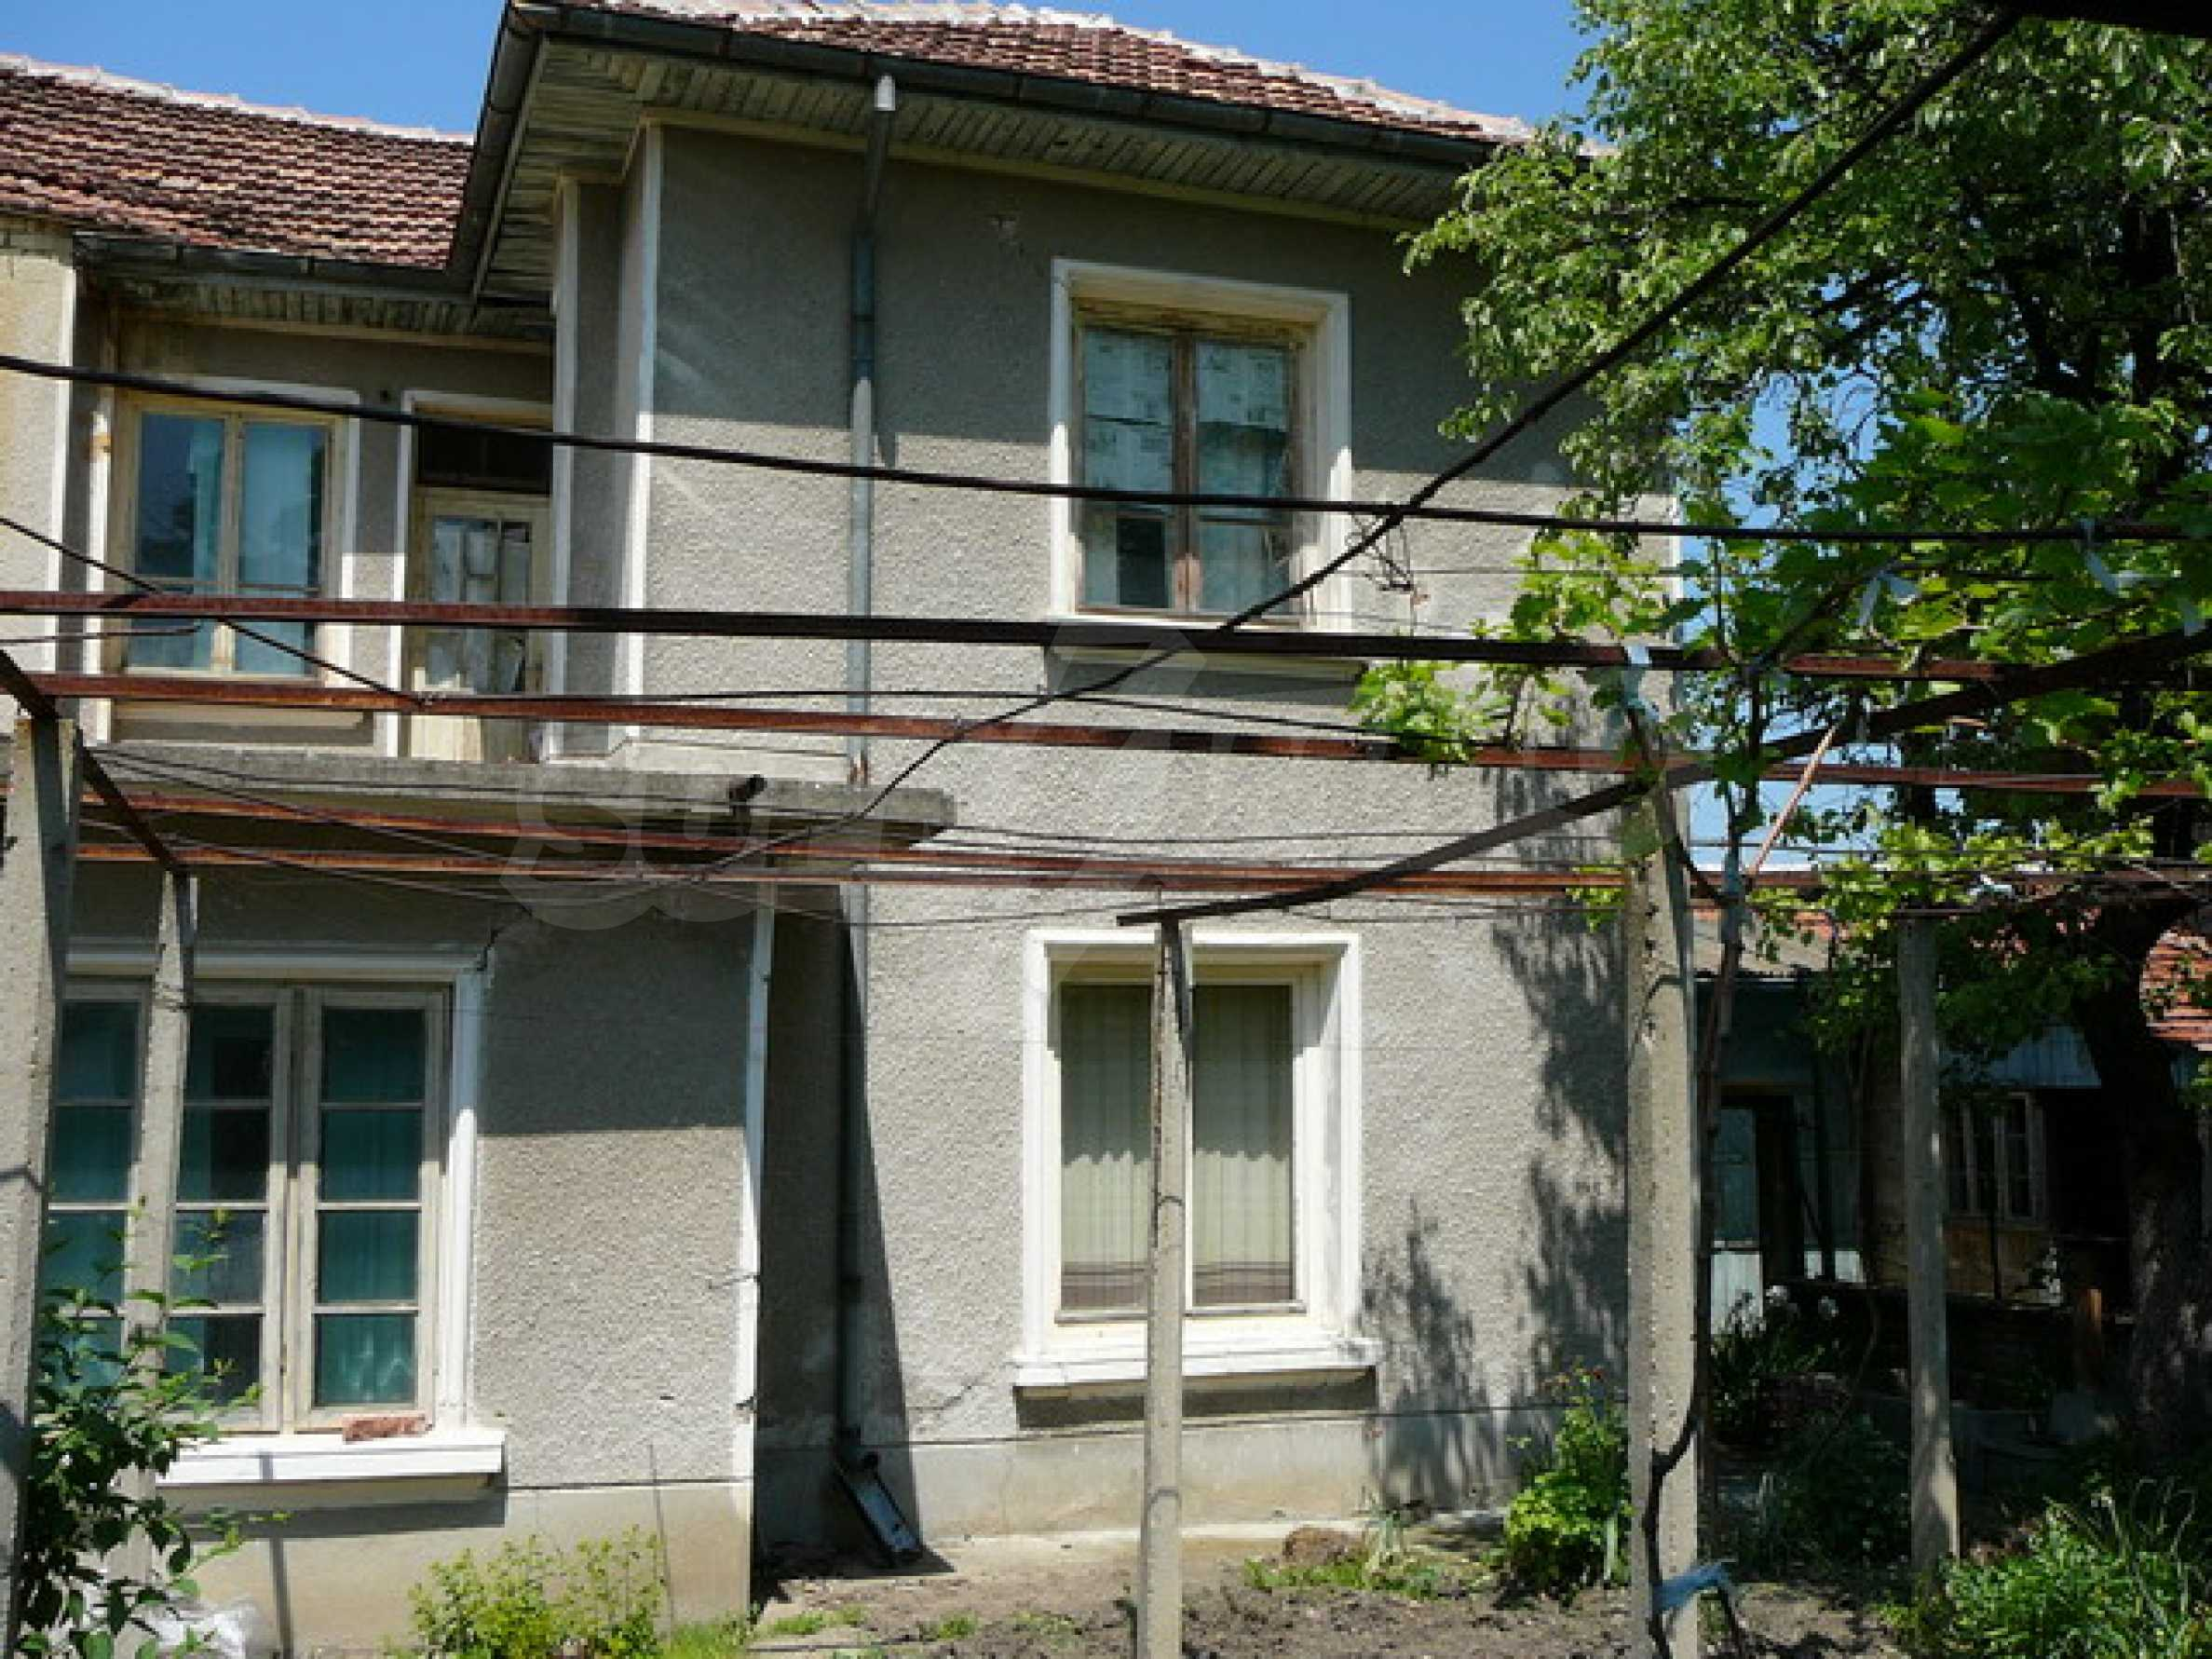 House for sale in a village close to Veliko Tarnovo 11